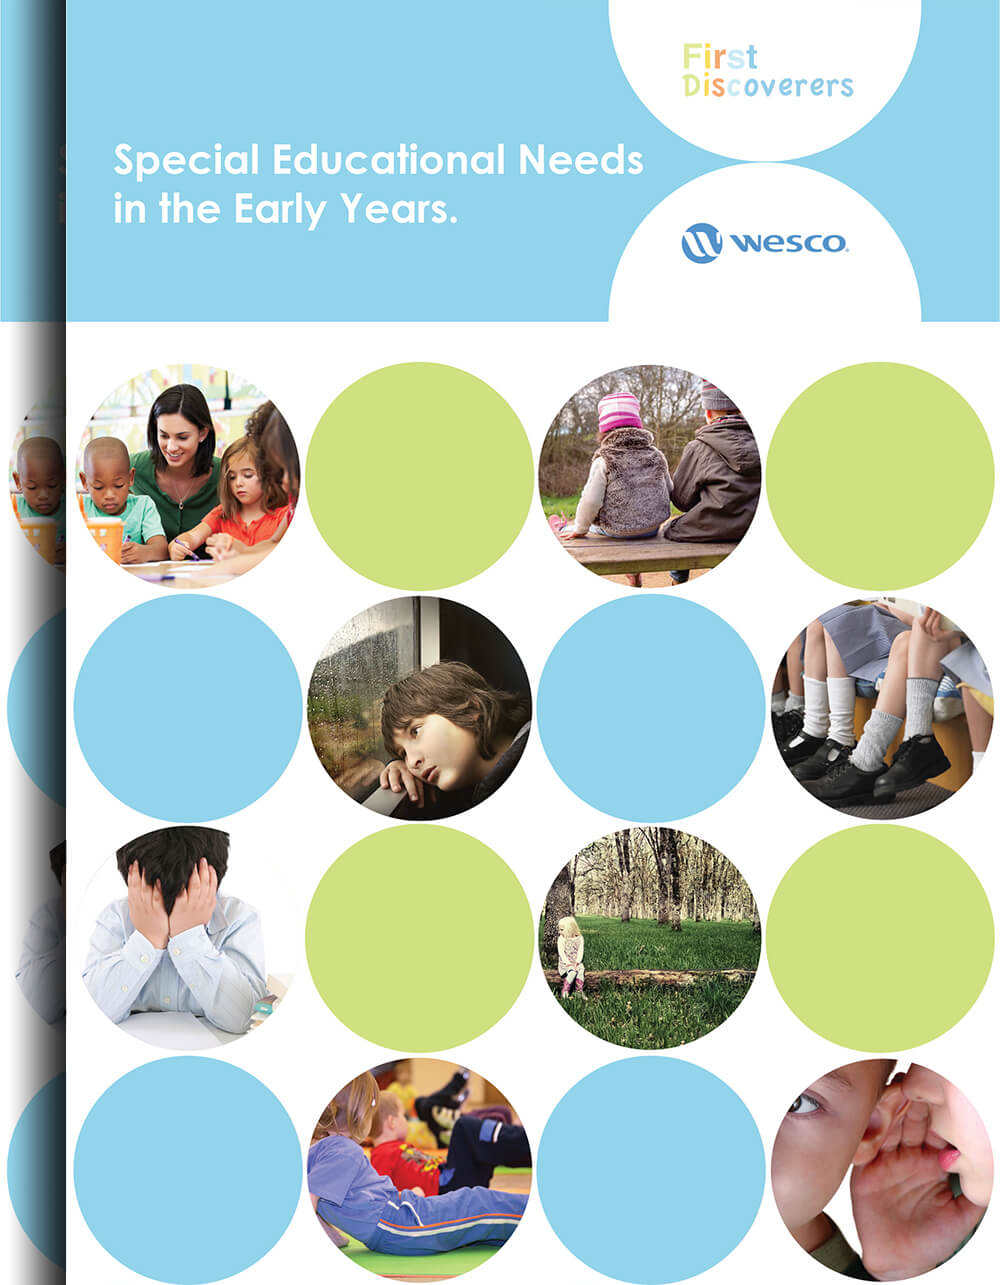 Special Educational Needs in the Early Years